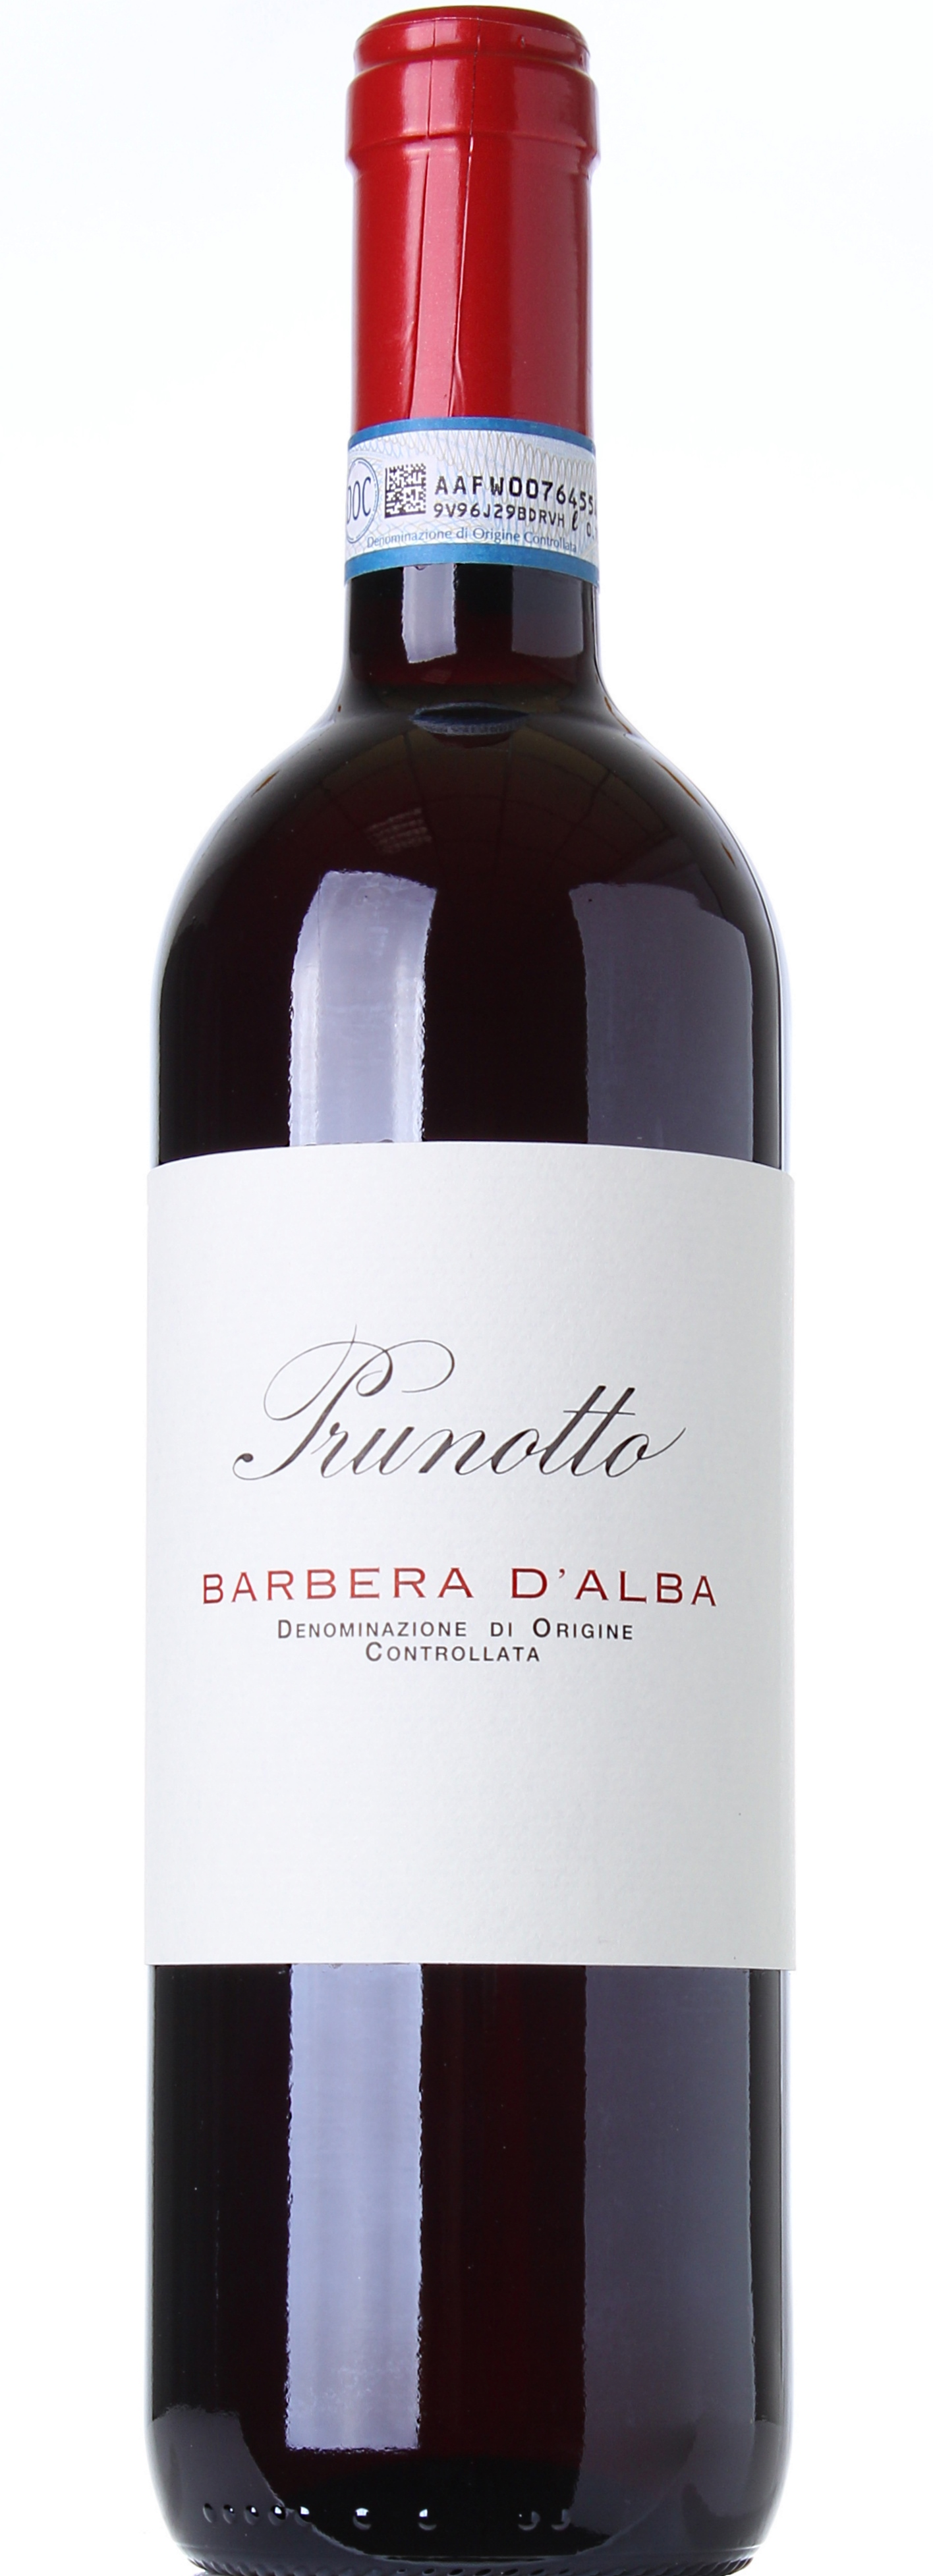 PRUNOTTO BARBERA D'ALBA 2014